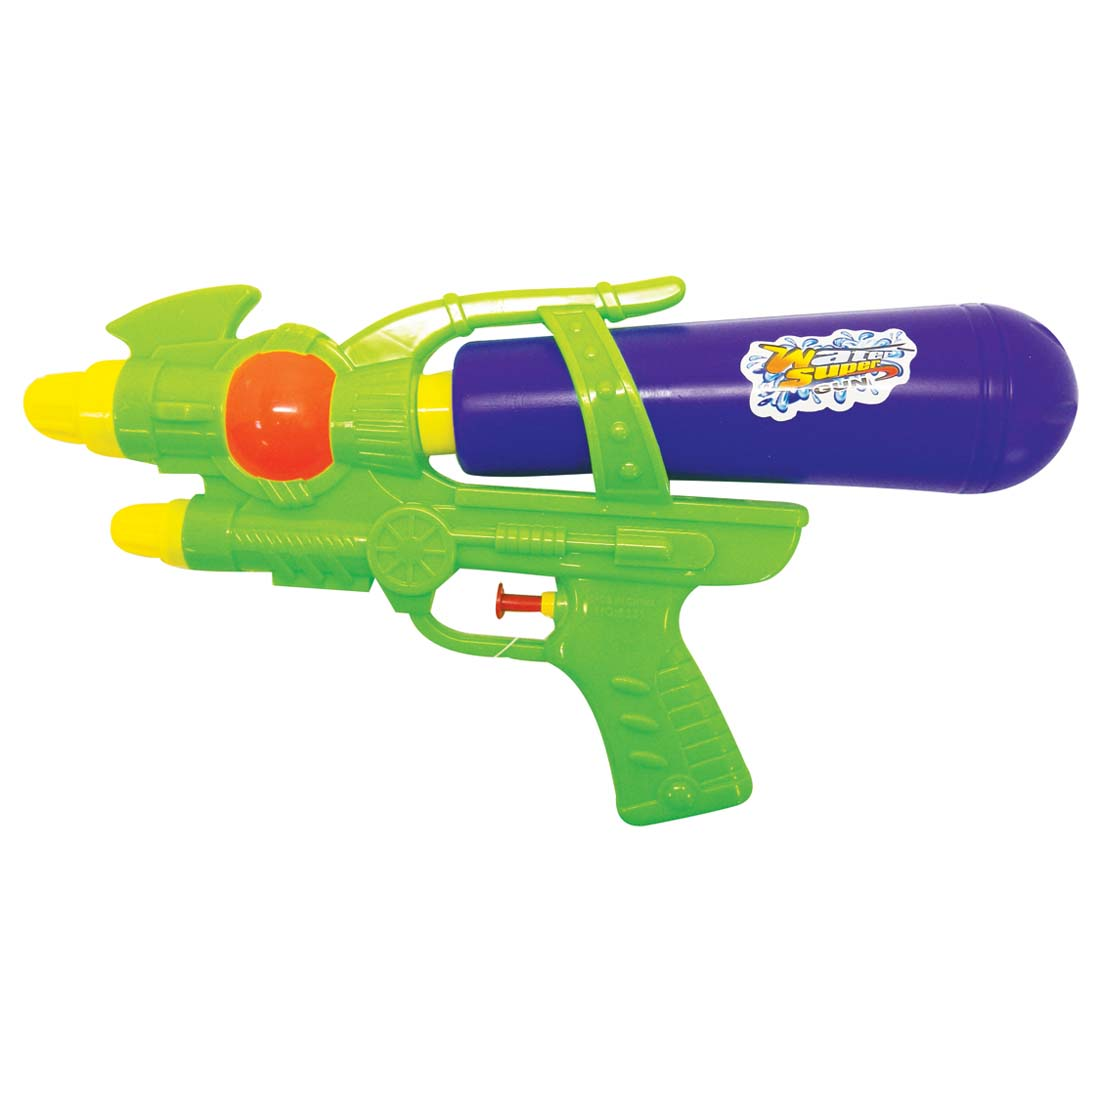 View WATER GUN 13 INCH ASSORTED COLORS